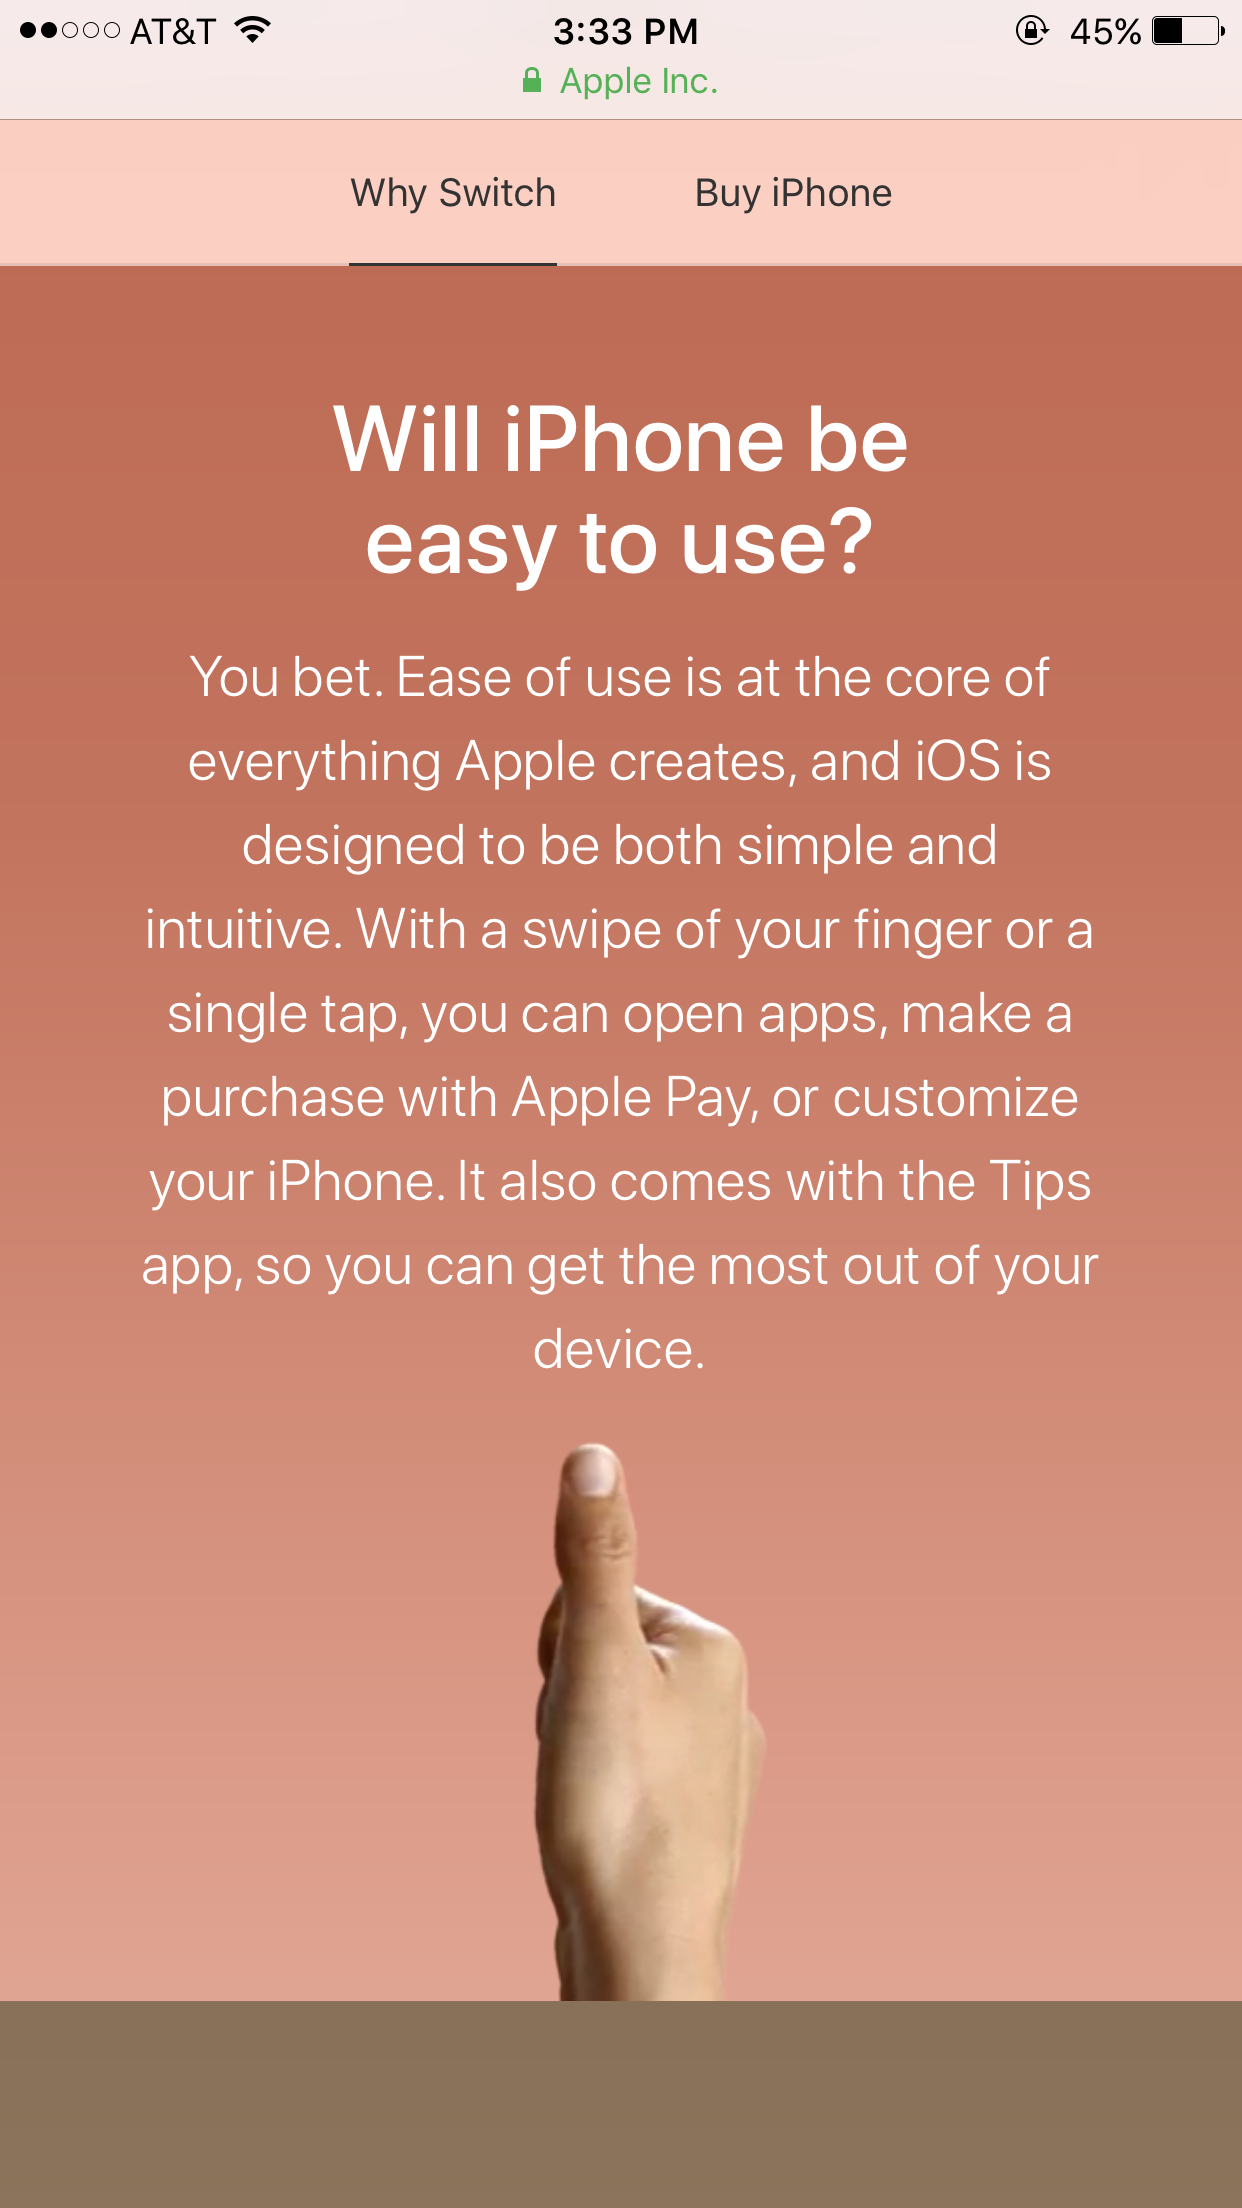 dating site for apple users forum A dating website only accepts users of apple devices.